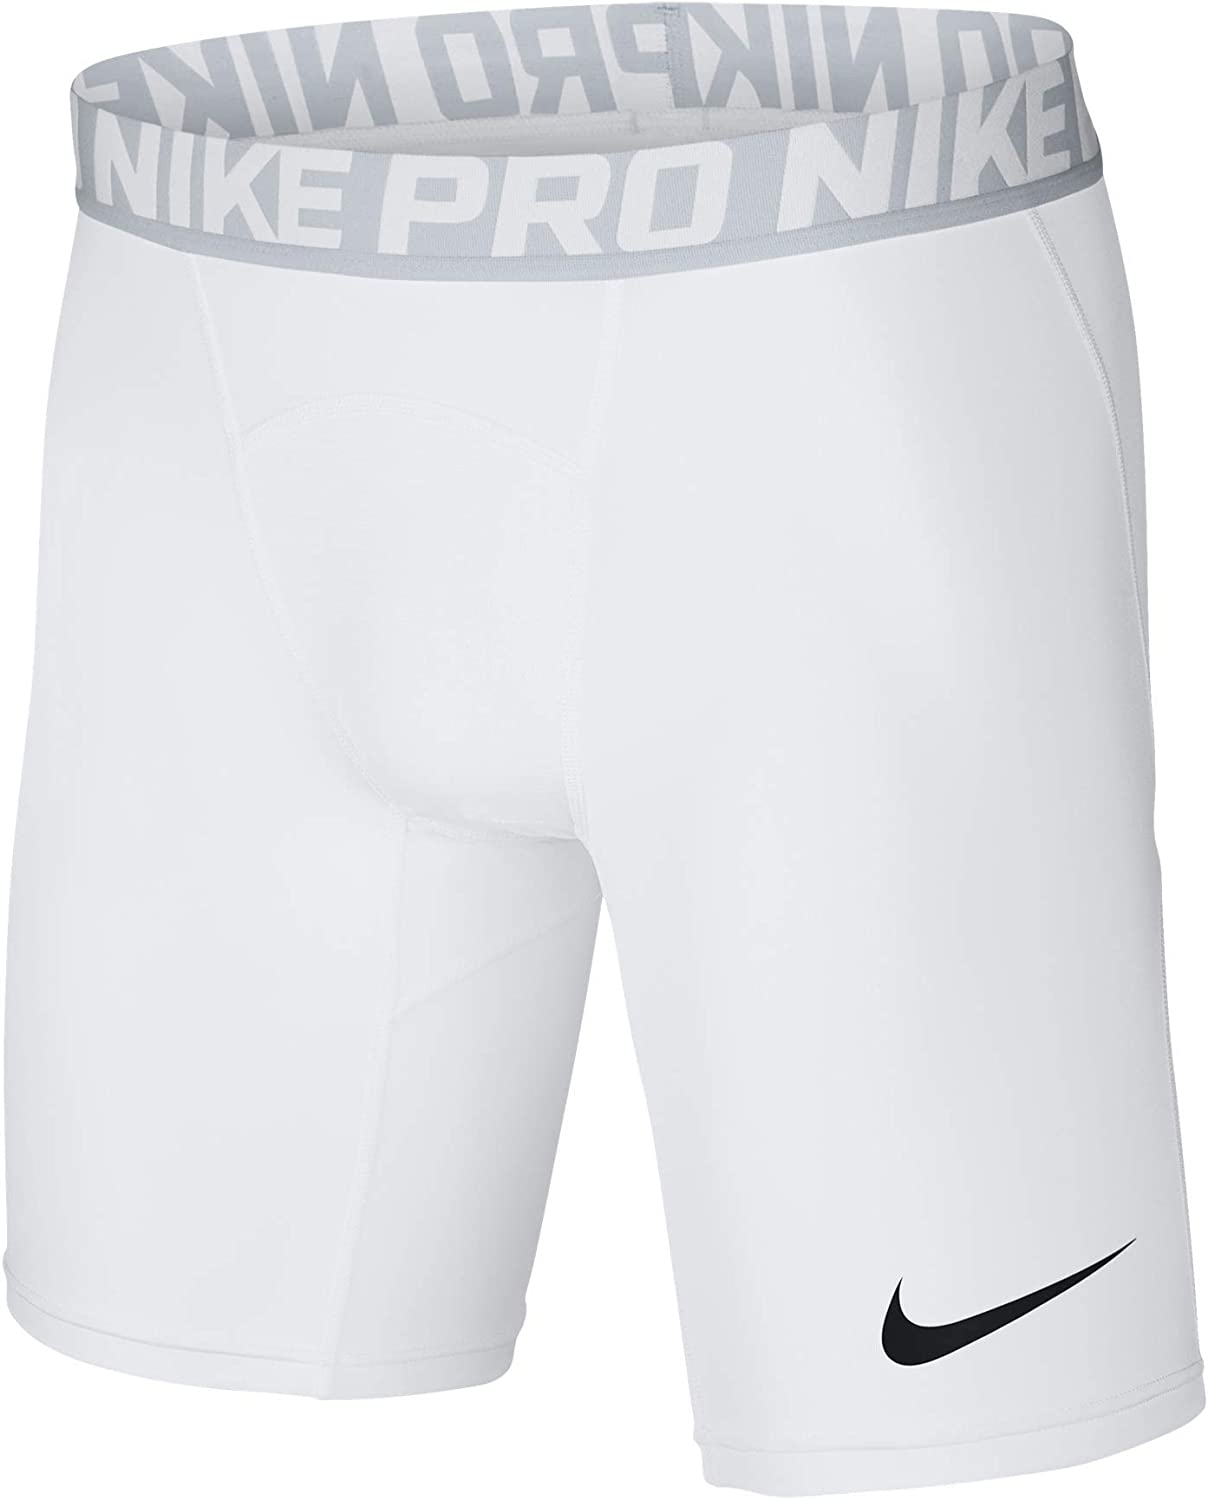 Nike Pro Compression Training Short Dry Fit